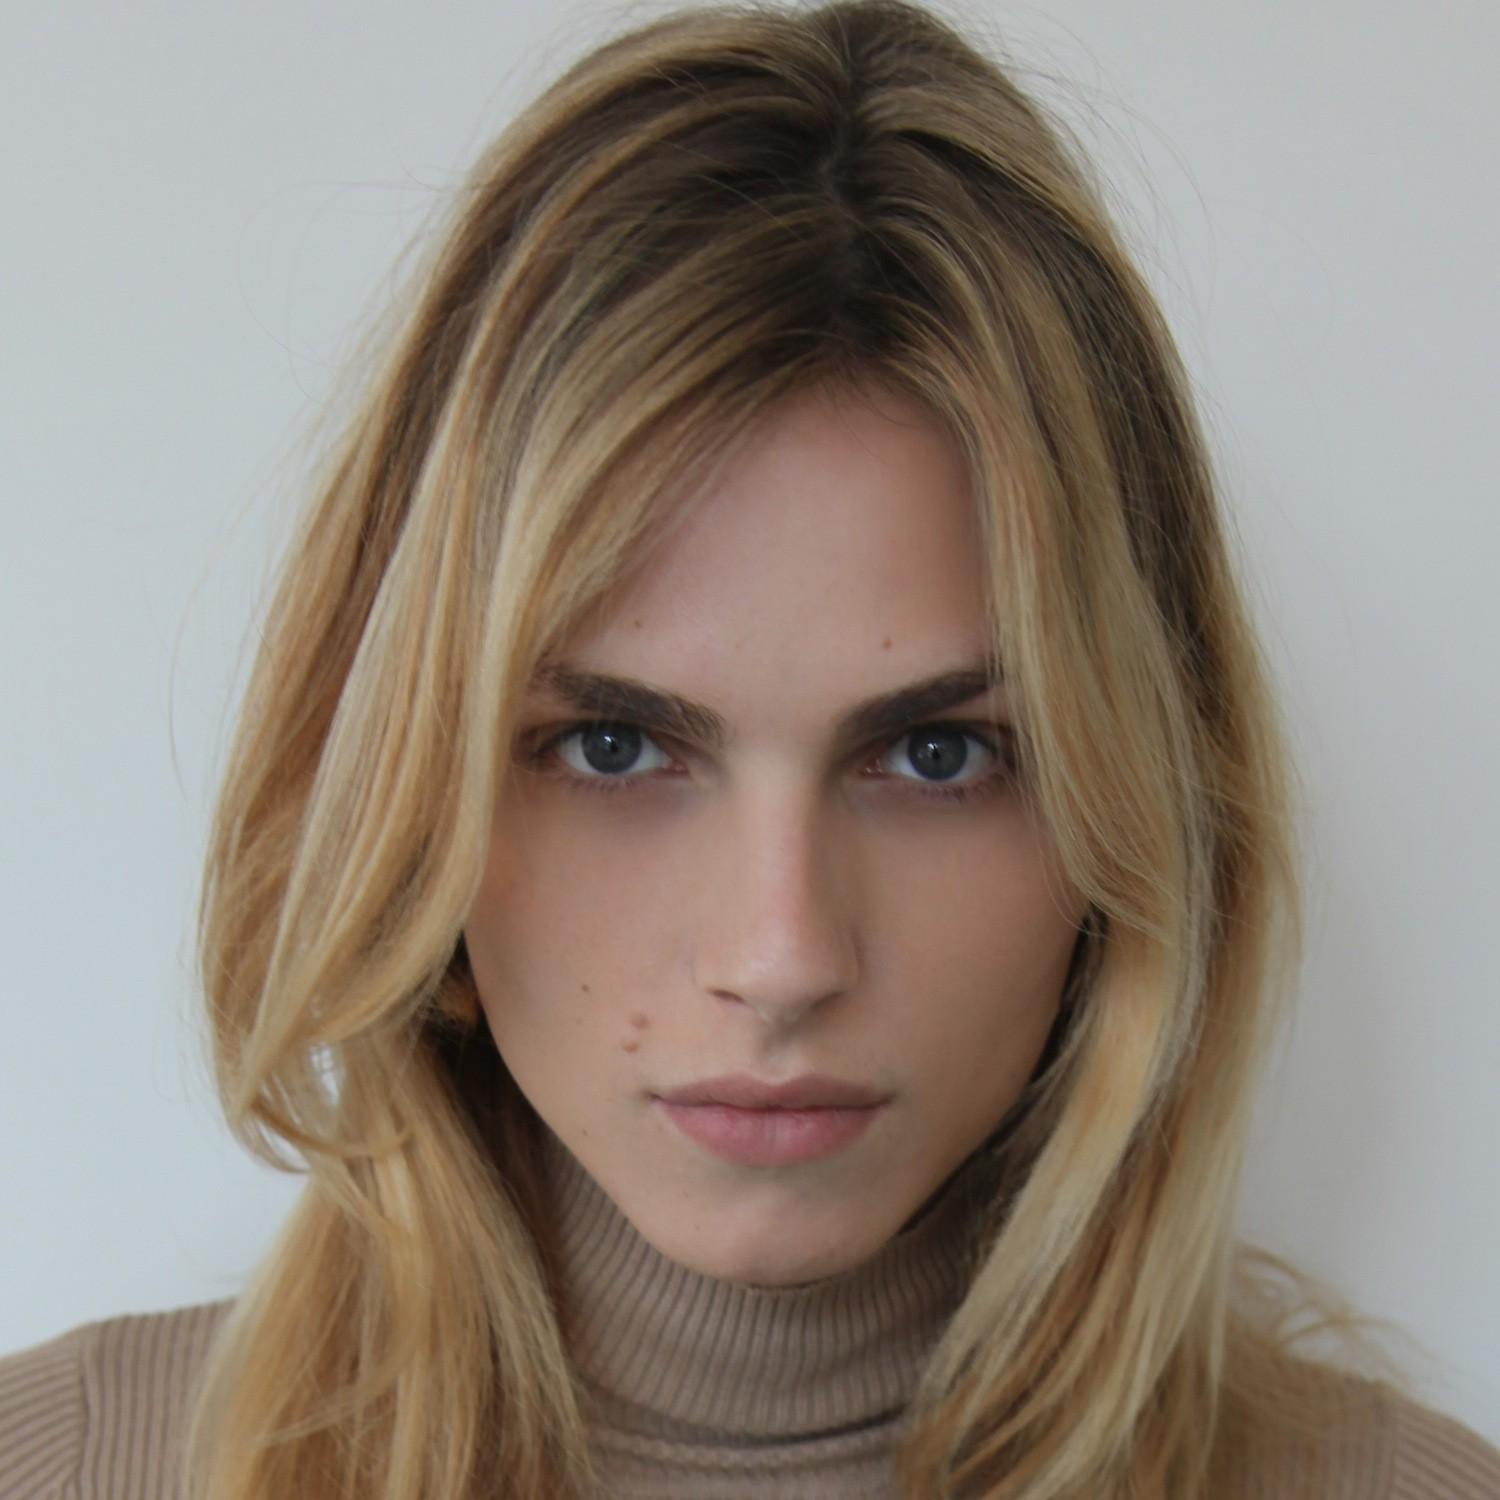 2017 fashion documentaries - Andreja Pejic Lands A Major Make Up Contract In A